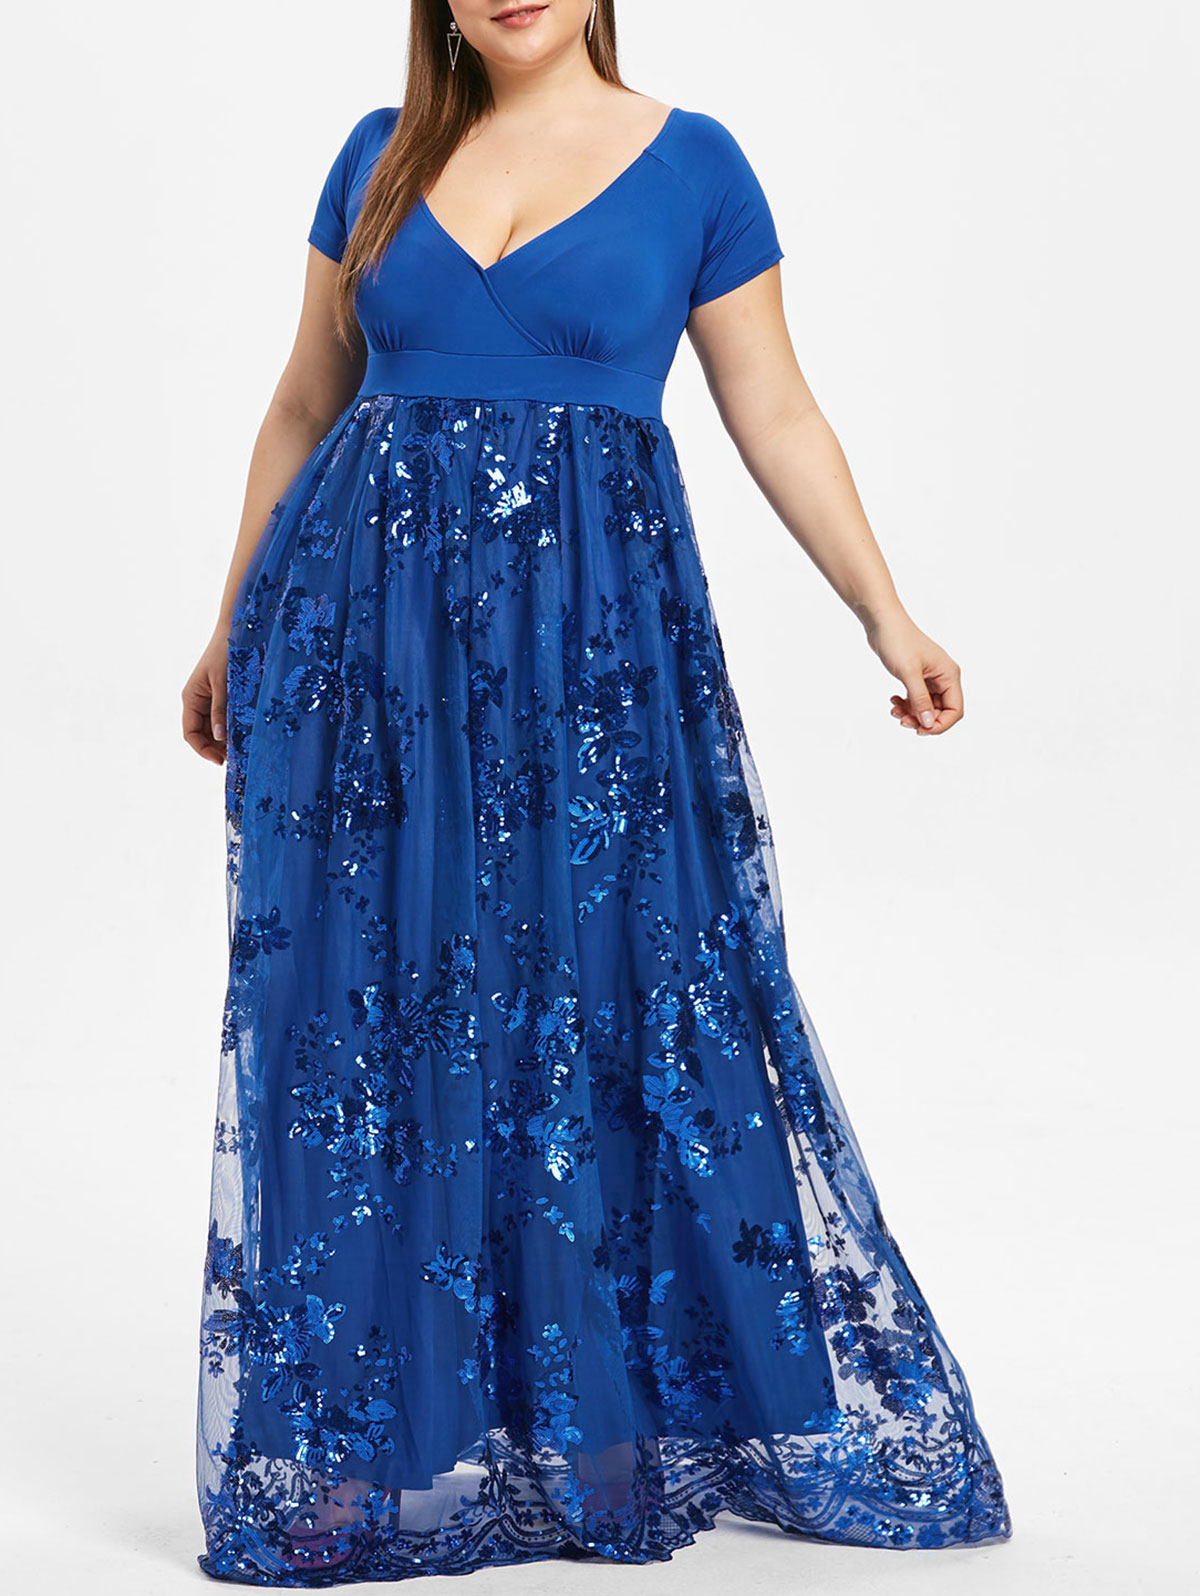 Wipalo 5Xl Plus Size Dress Women Sequined Floral Sparkly -9902